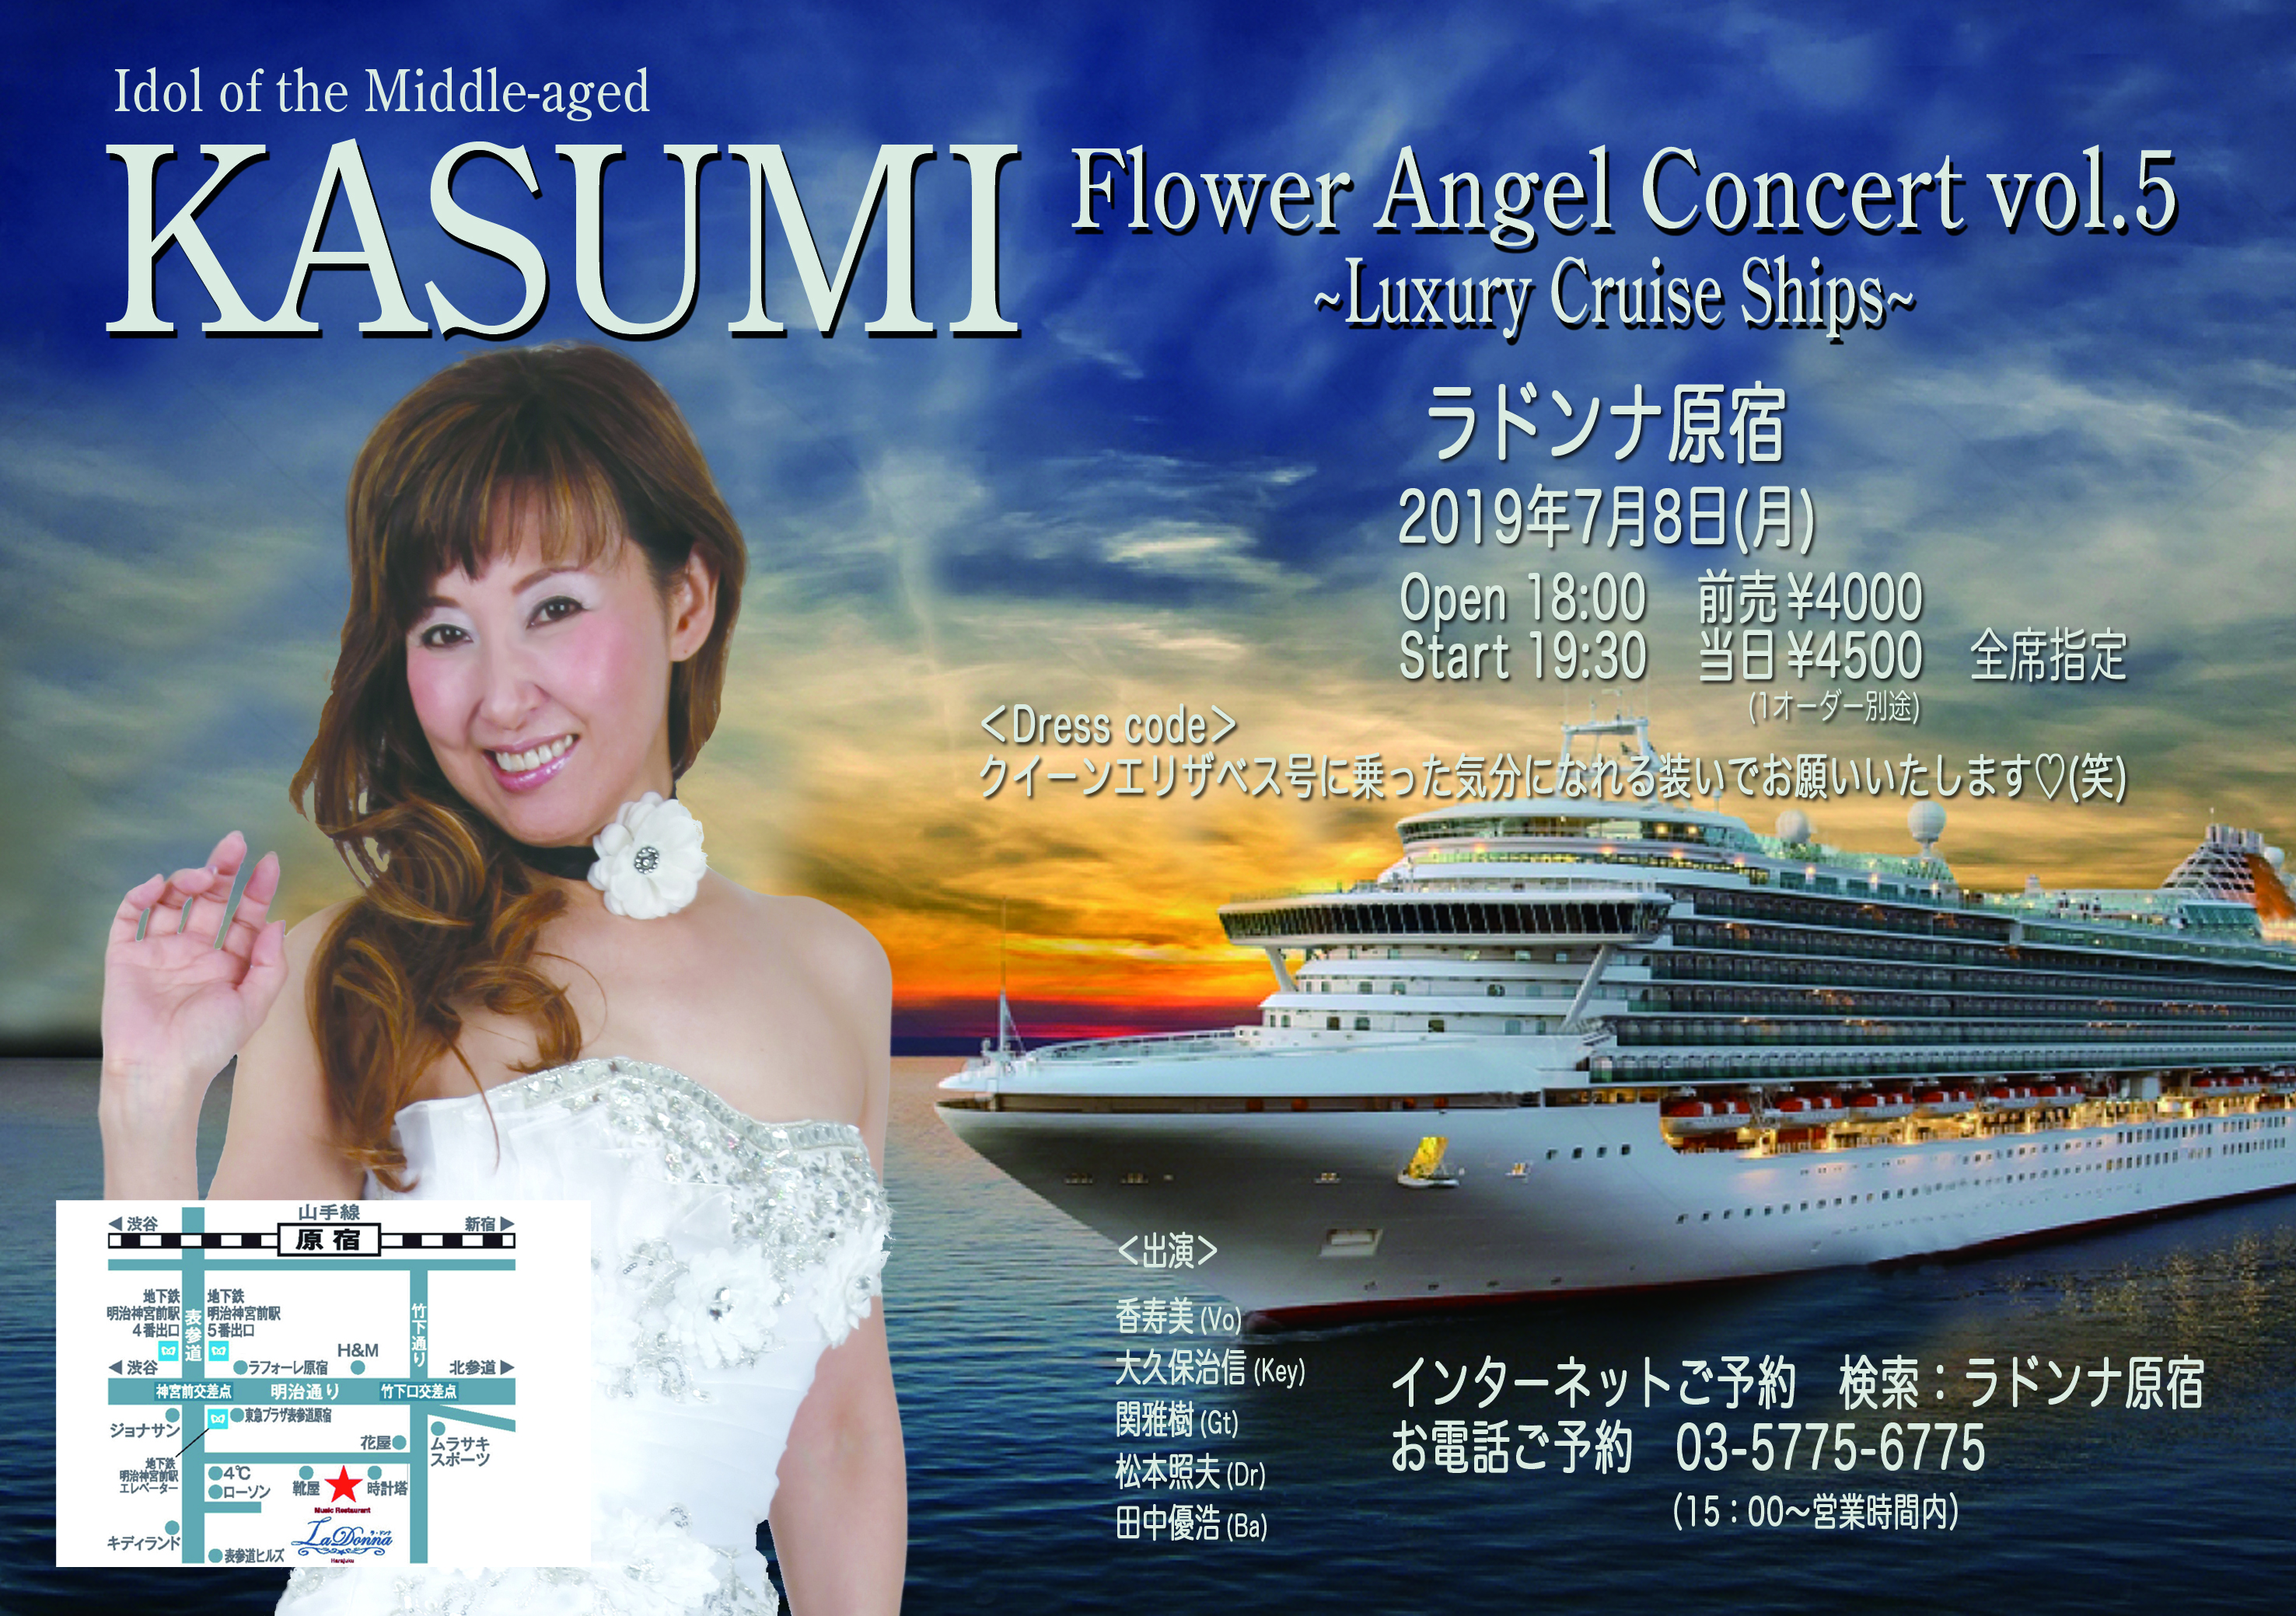 KASUMI Flower Angel Concert vol.5 ~Luxury Cruise Ships~